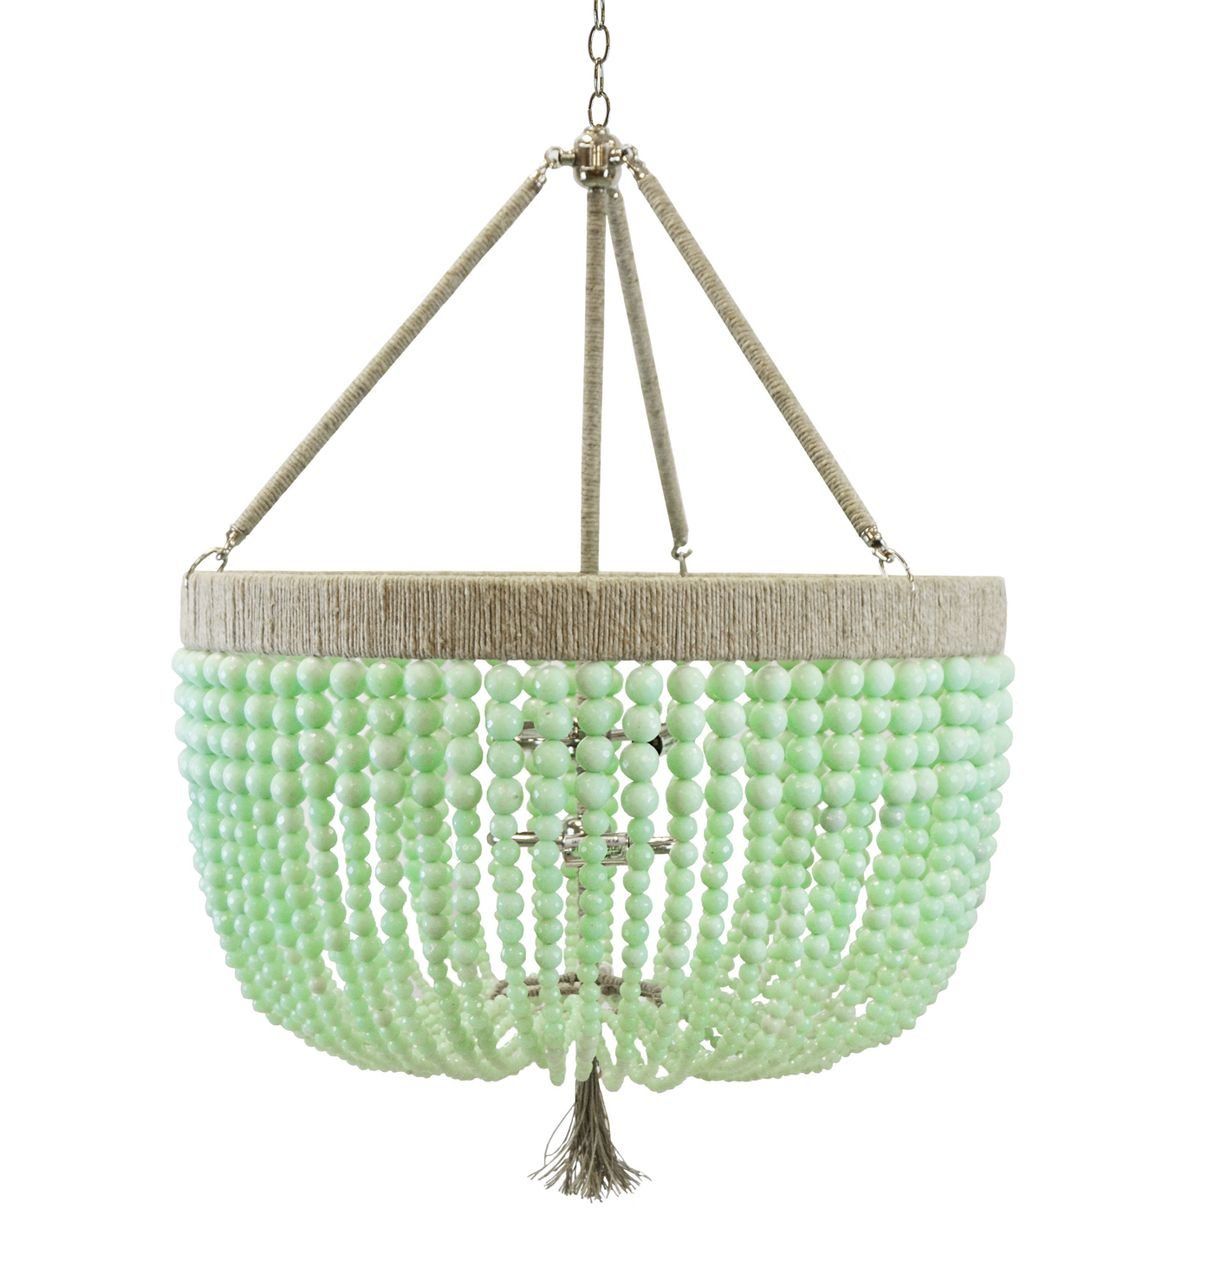 Ro sham beaux malibu robins egg 3 arm chandelier bold colors shop for a ro sham beaux malibu robins egg 3 arm chandelier uniquely designed with sustainable recycled materials infusing bold colors for a coastal mozeypictures Images